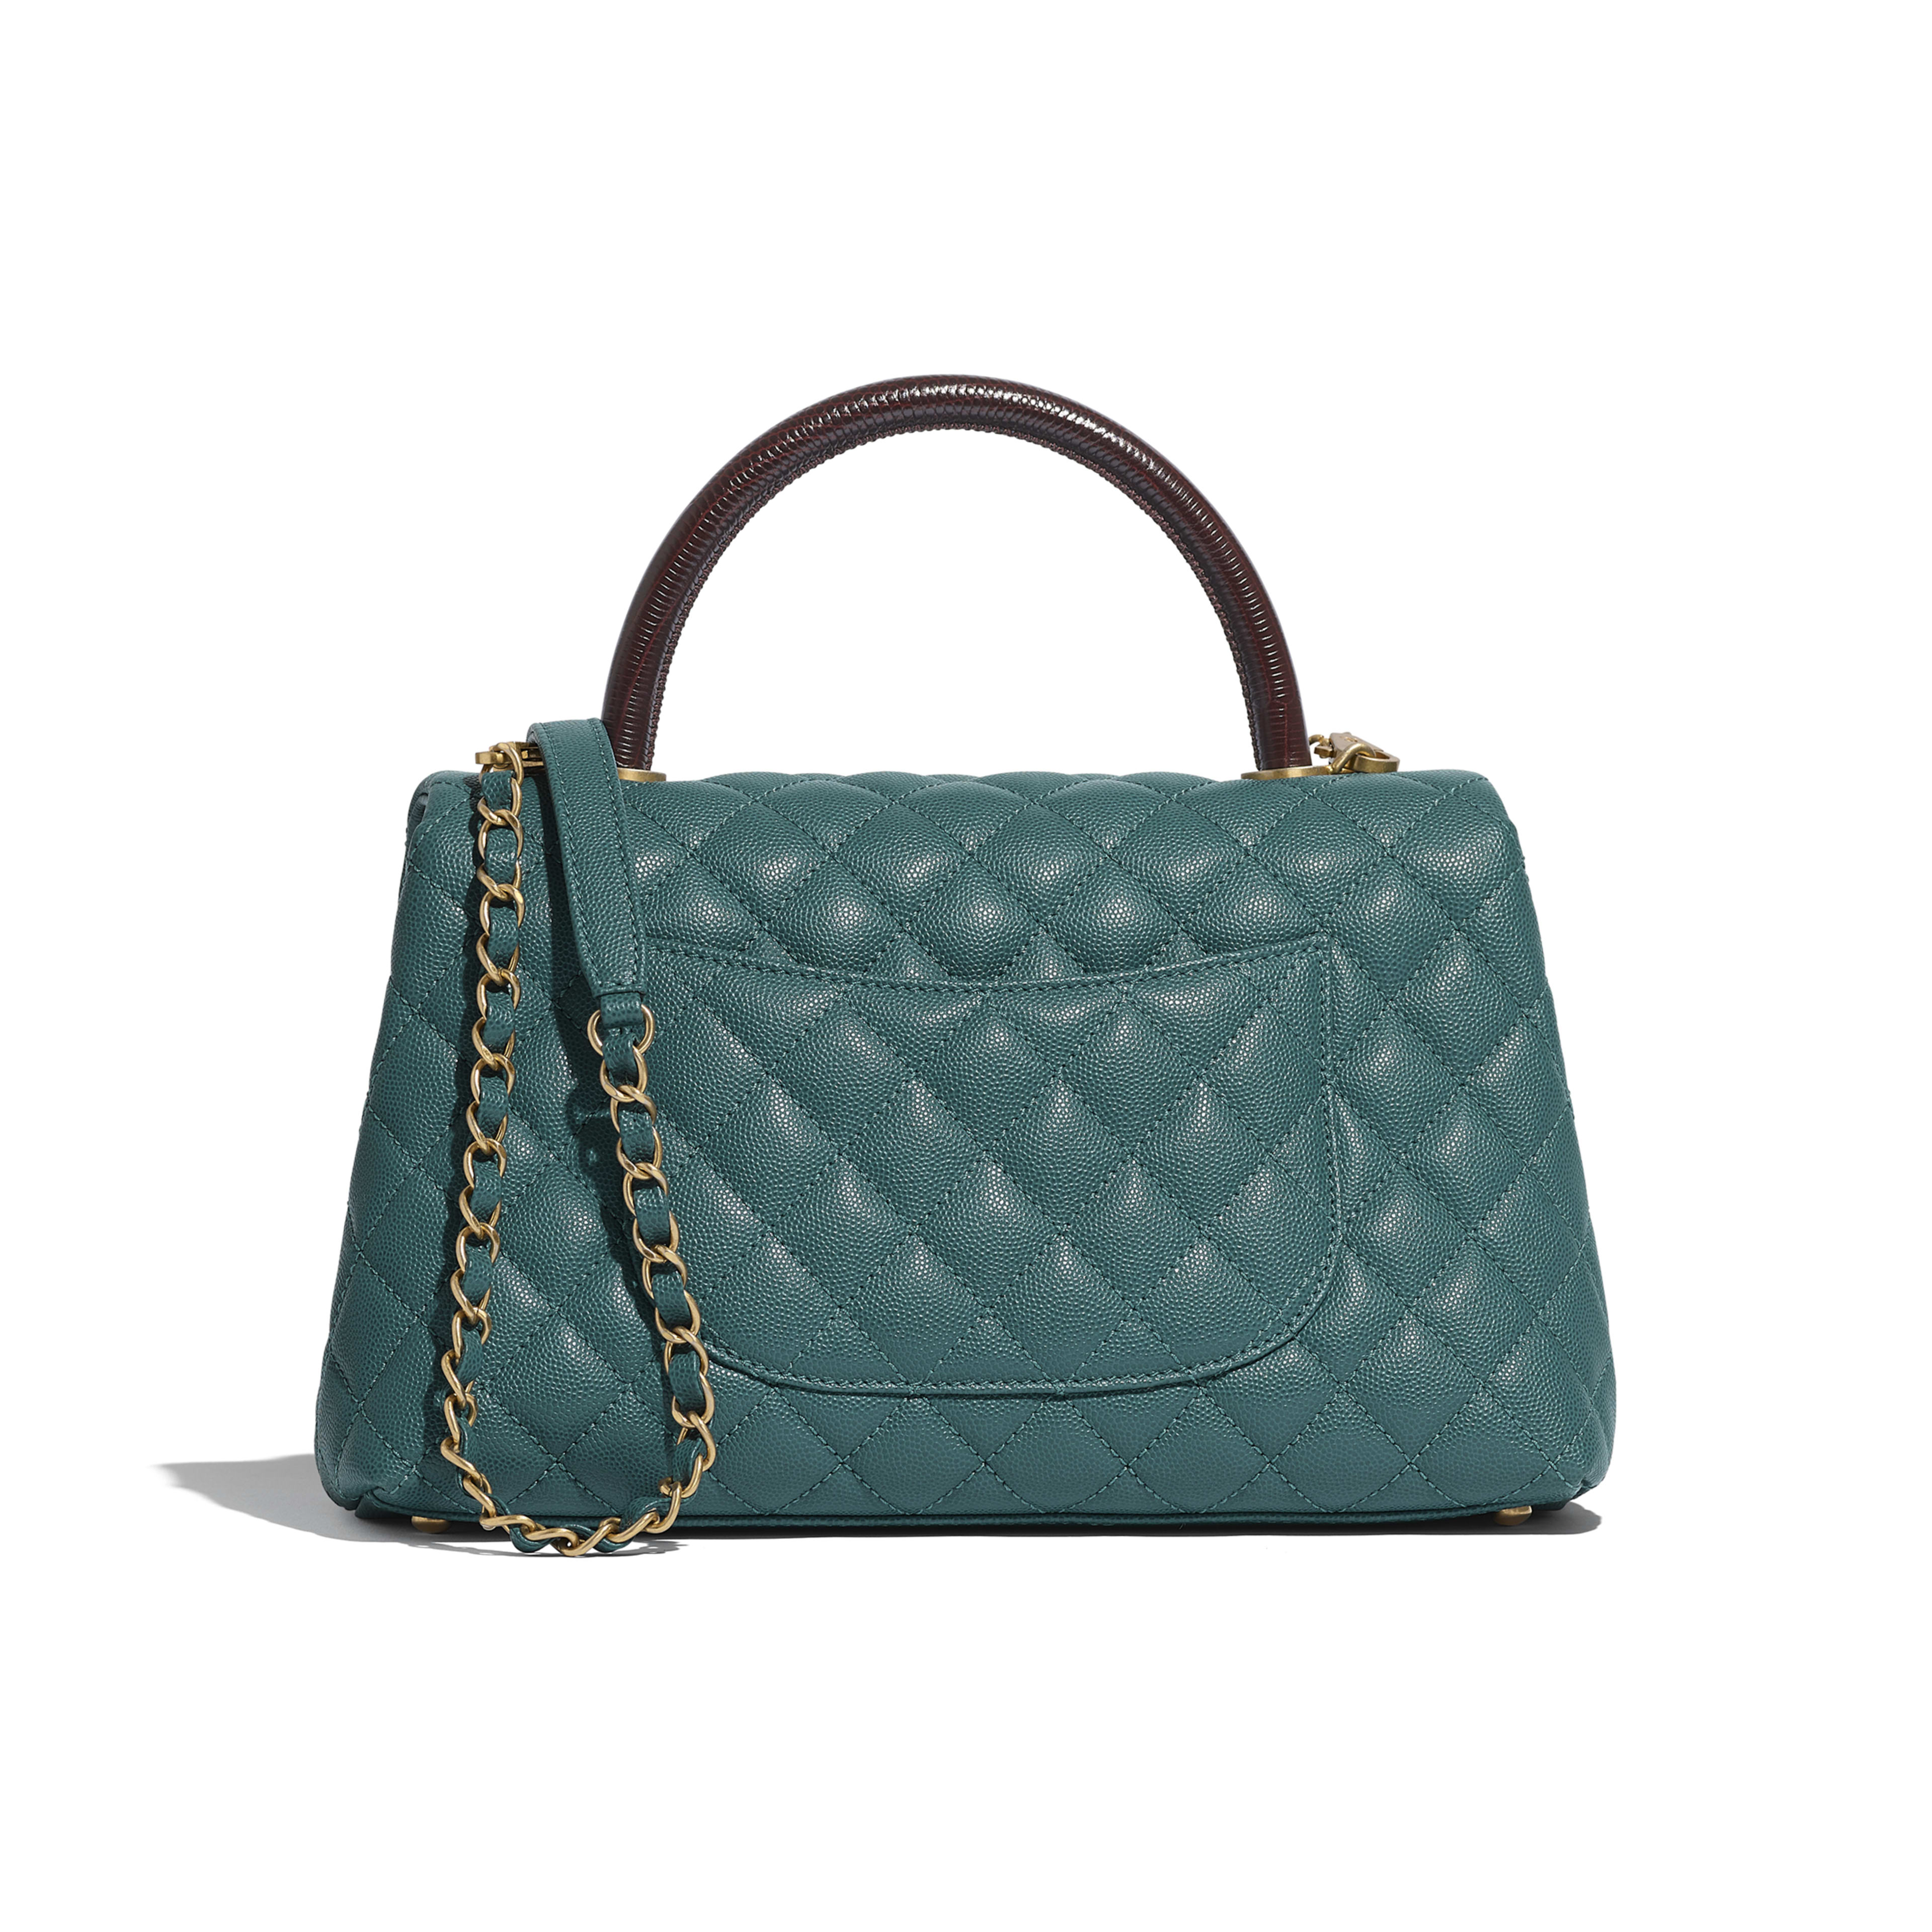 Flap Bag with Top Handle - Turquoise & Burgundy - Grained Calfskin, Lizard Embossed Calfskin & Gold-Tone Metal - Alternative view - see full sized version